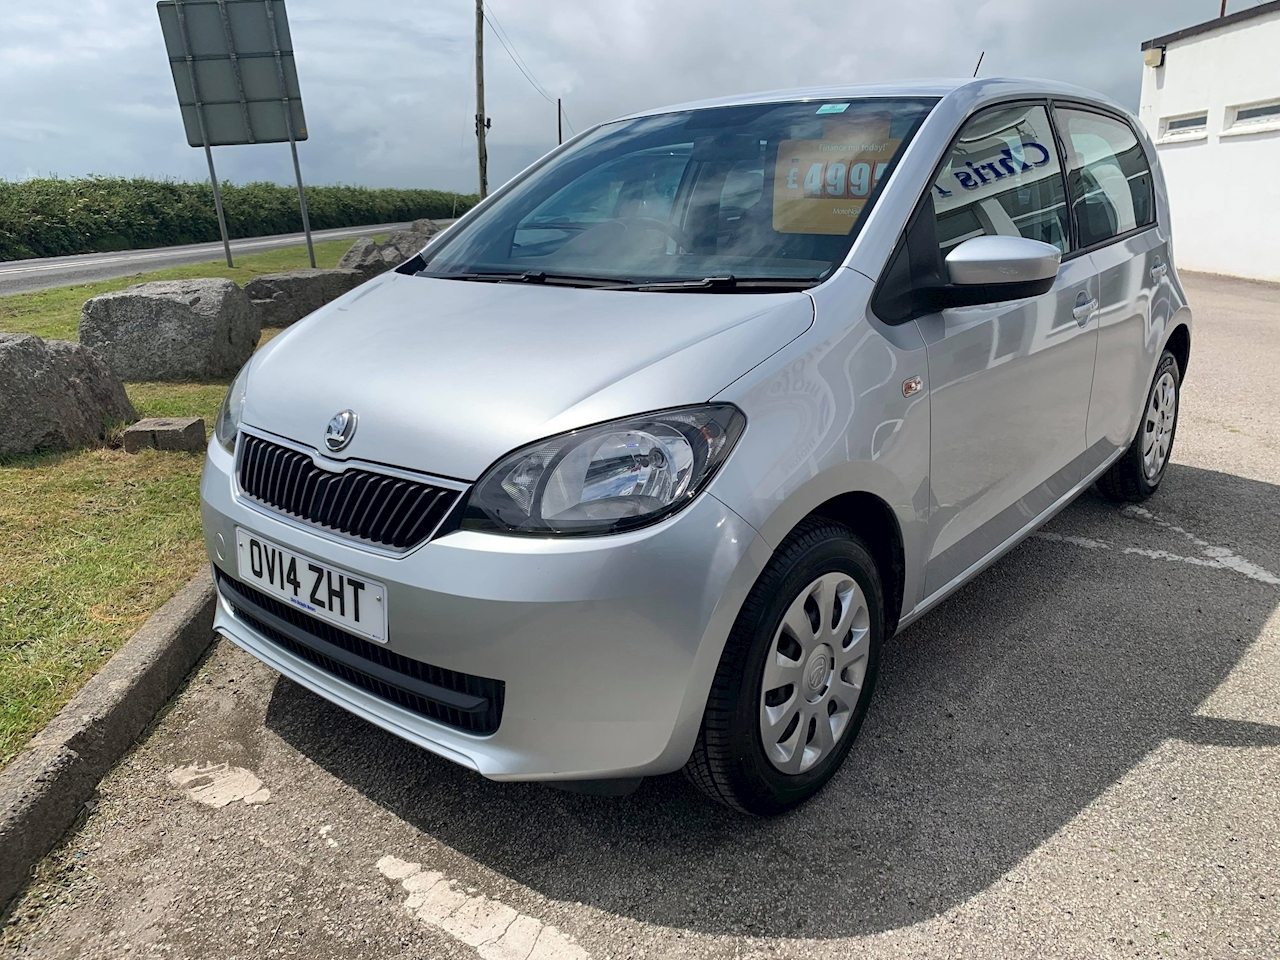 Skoda Citigo Se 12V Hatchback 1.0 Manual Petrol